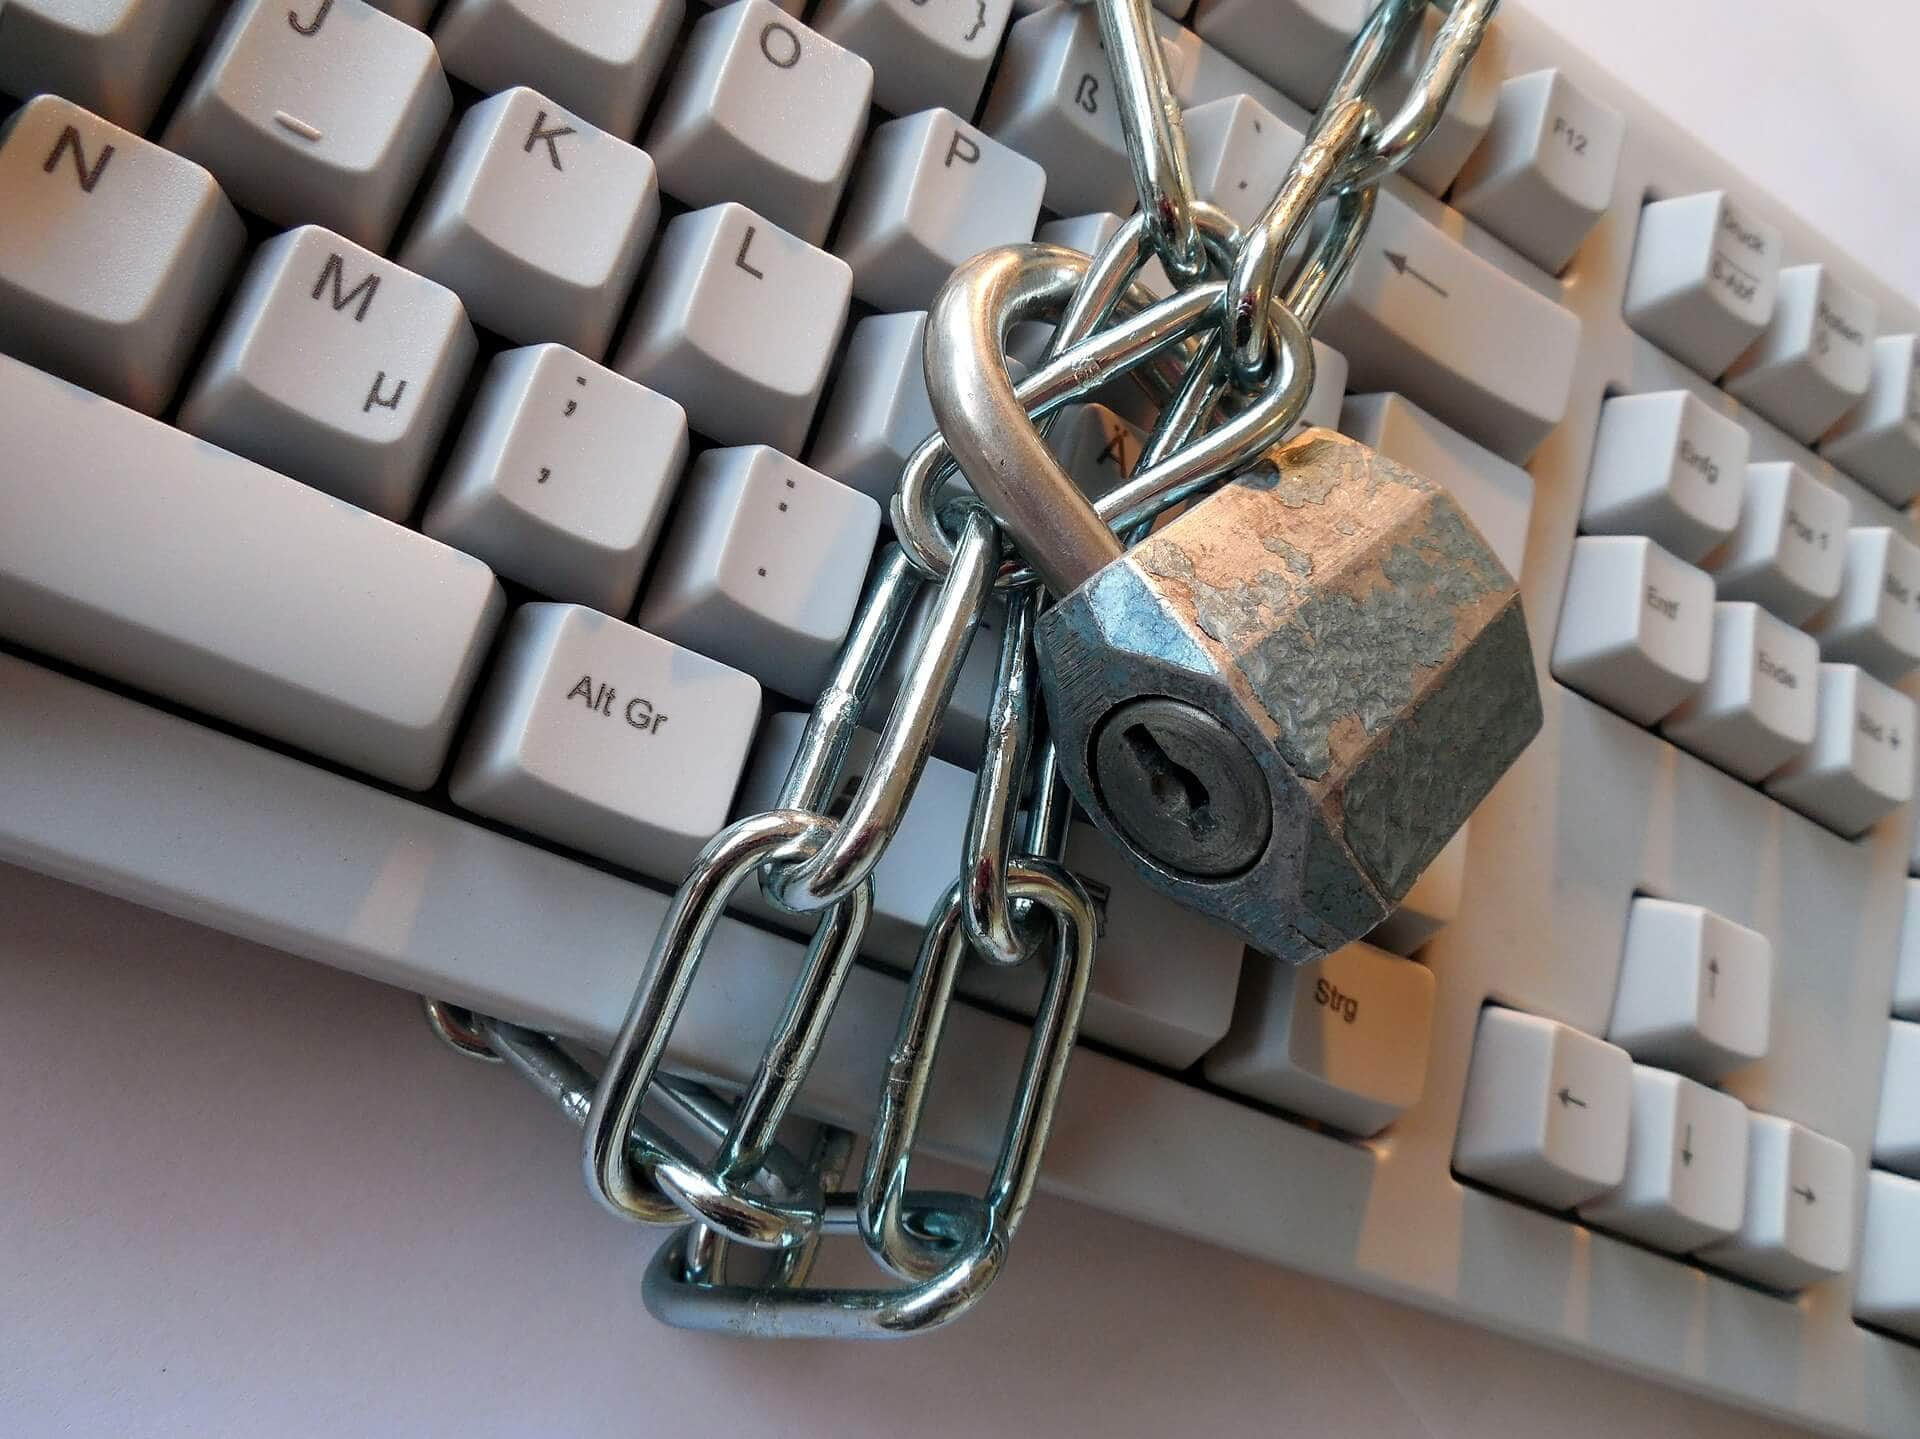 How to defend against security breaches